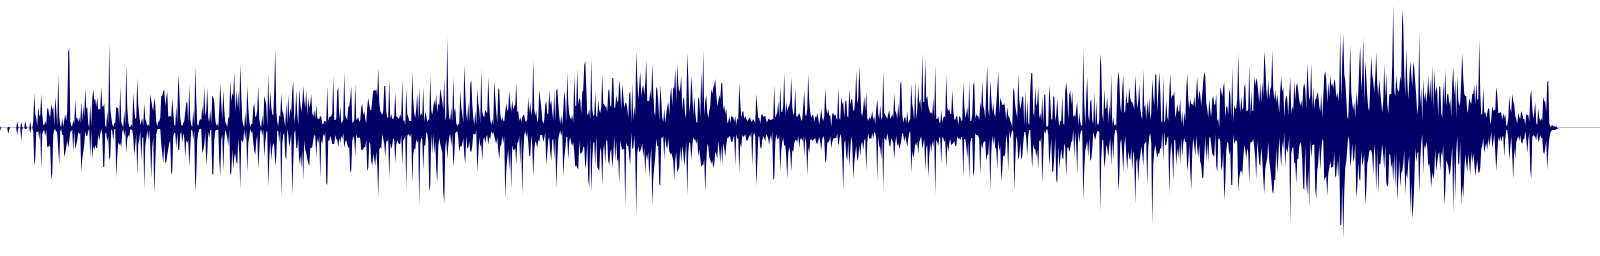 waveform of track #144689